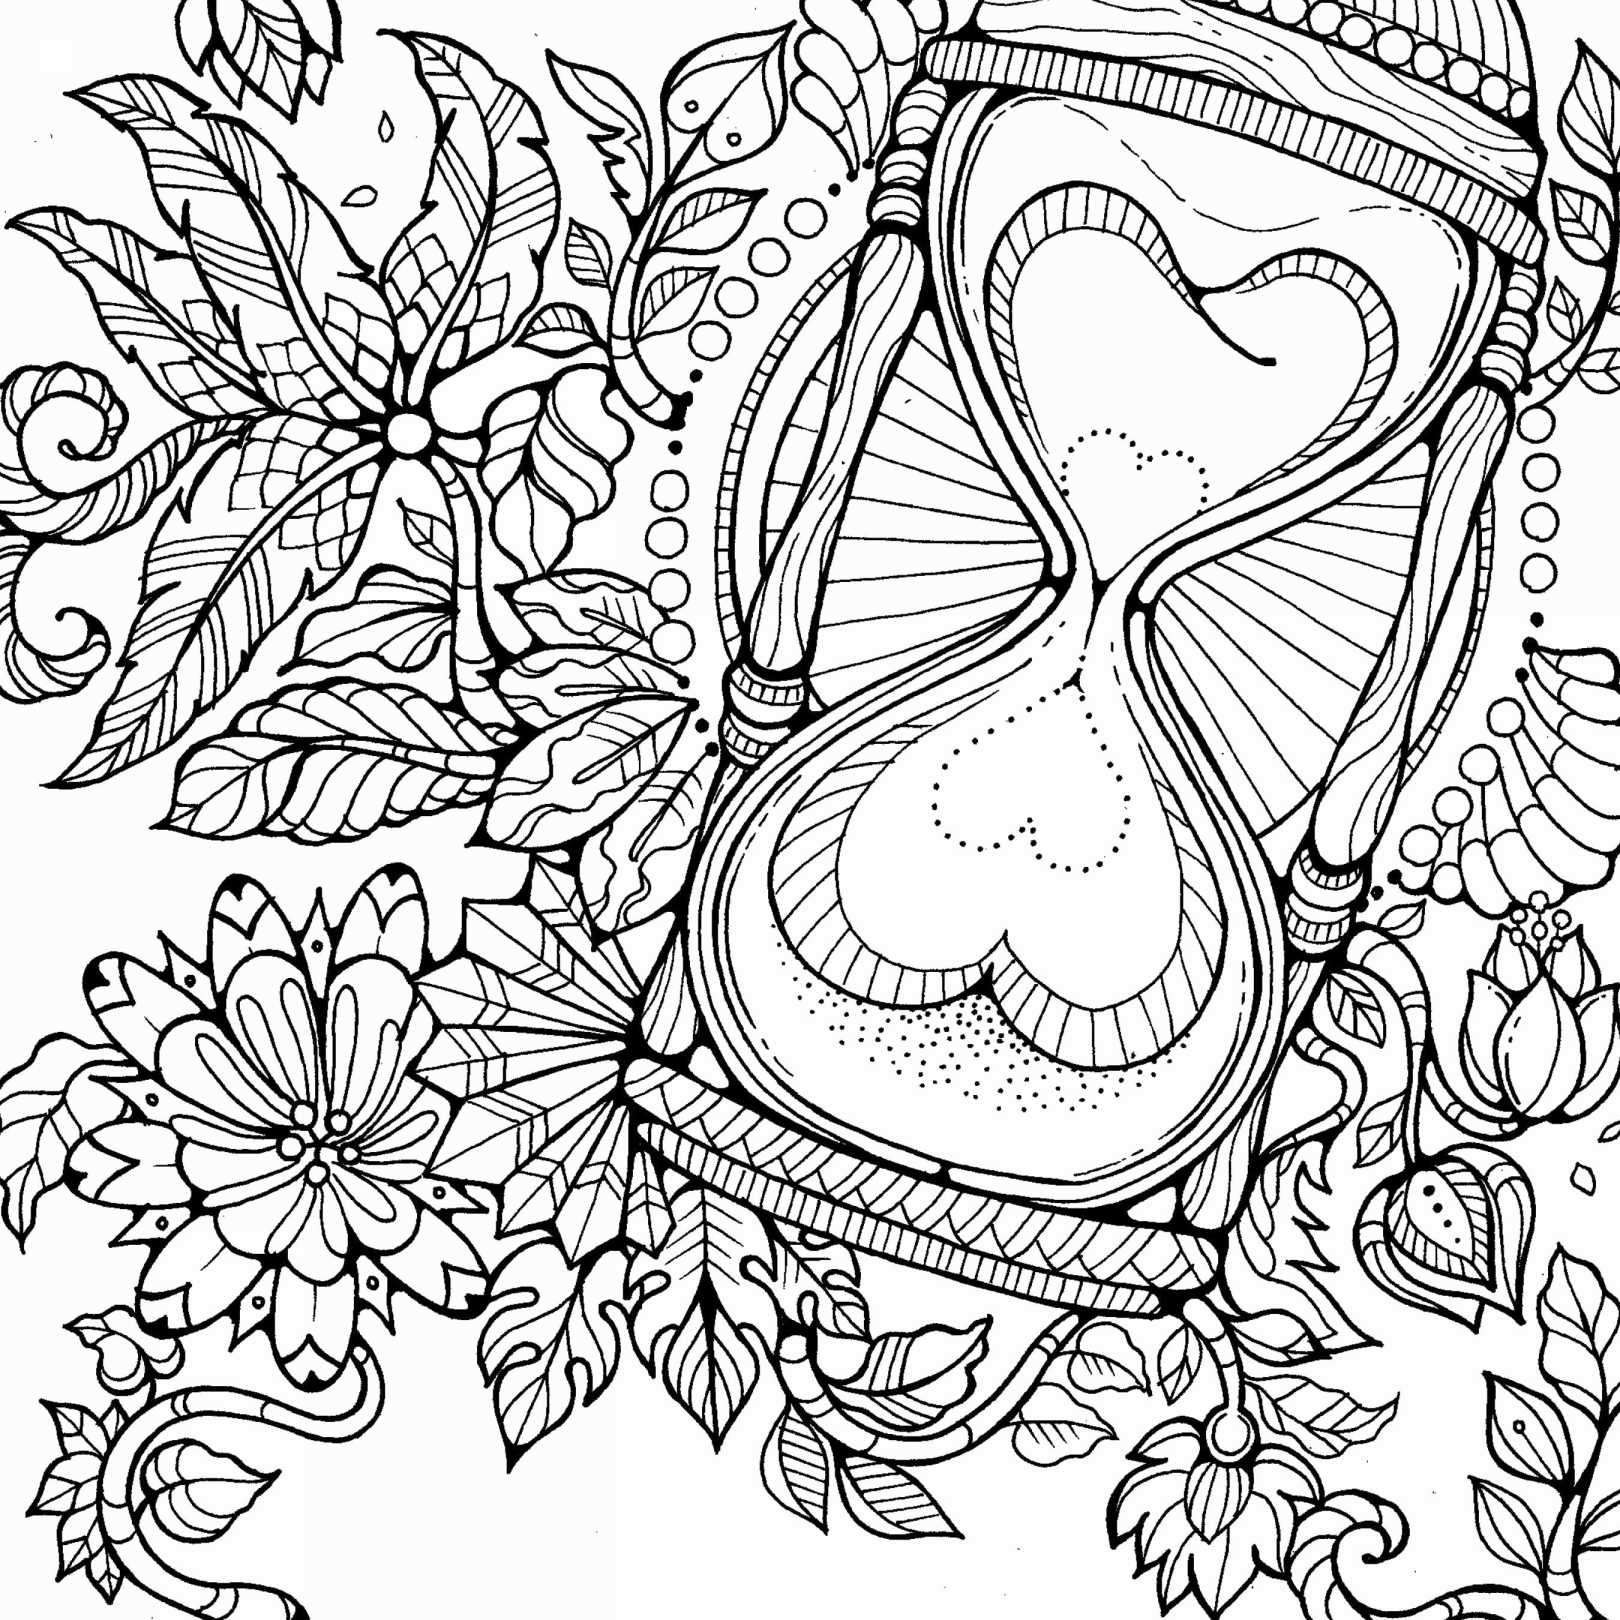 Free Christian Christmas Coloring Pages Printable With Veggie Tales Page